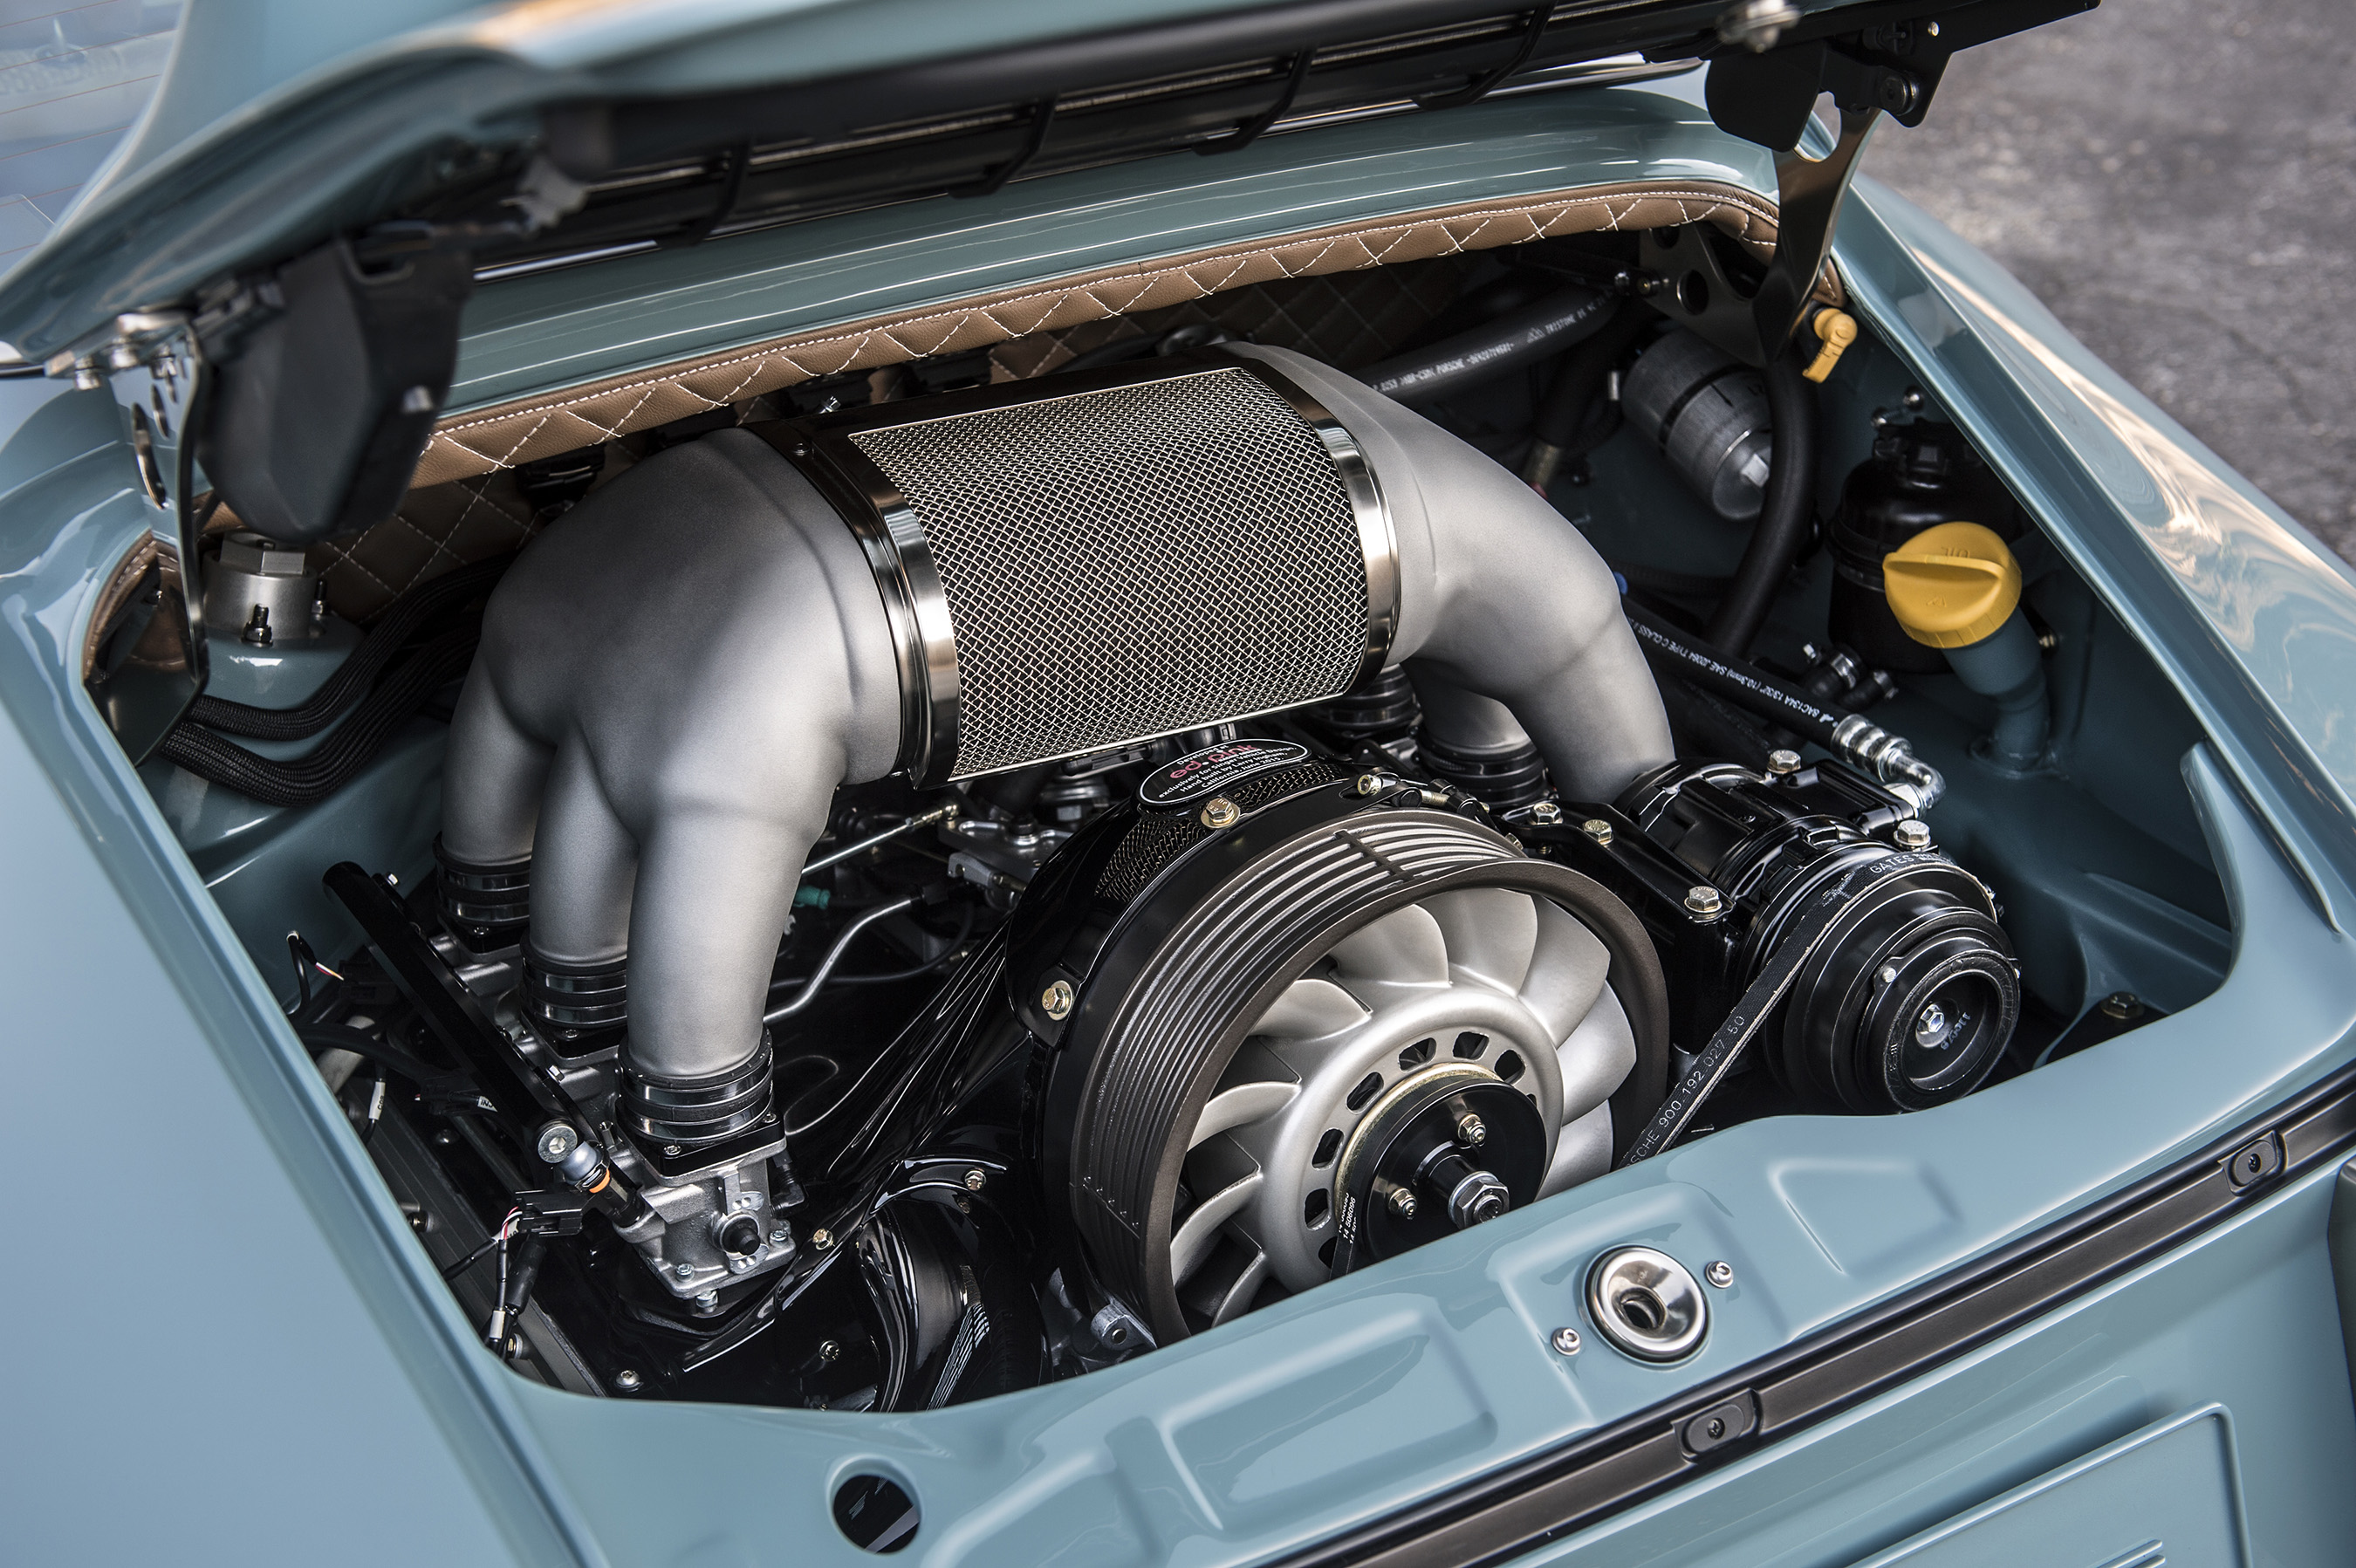 This beautifully designed flat six air-cooled 4.0-liter, 390hp jewel of an engine by world-renowned Ed Pink Racing Engines, is developed exclusively for customers of Singer Vehicle Design.